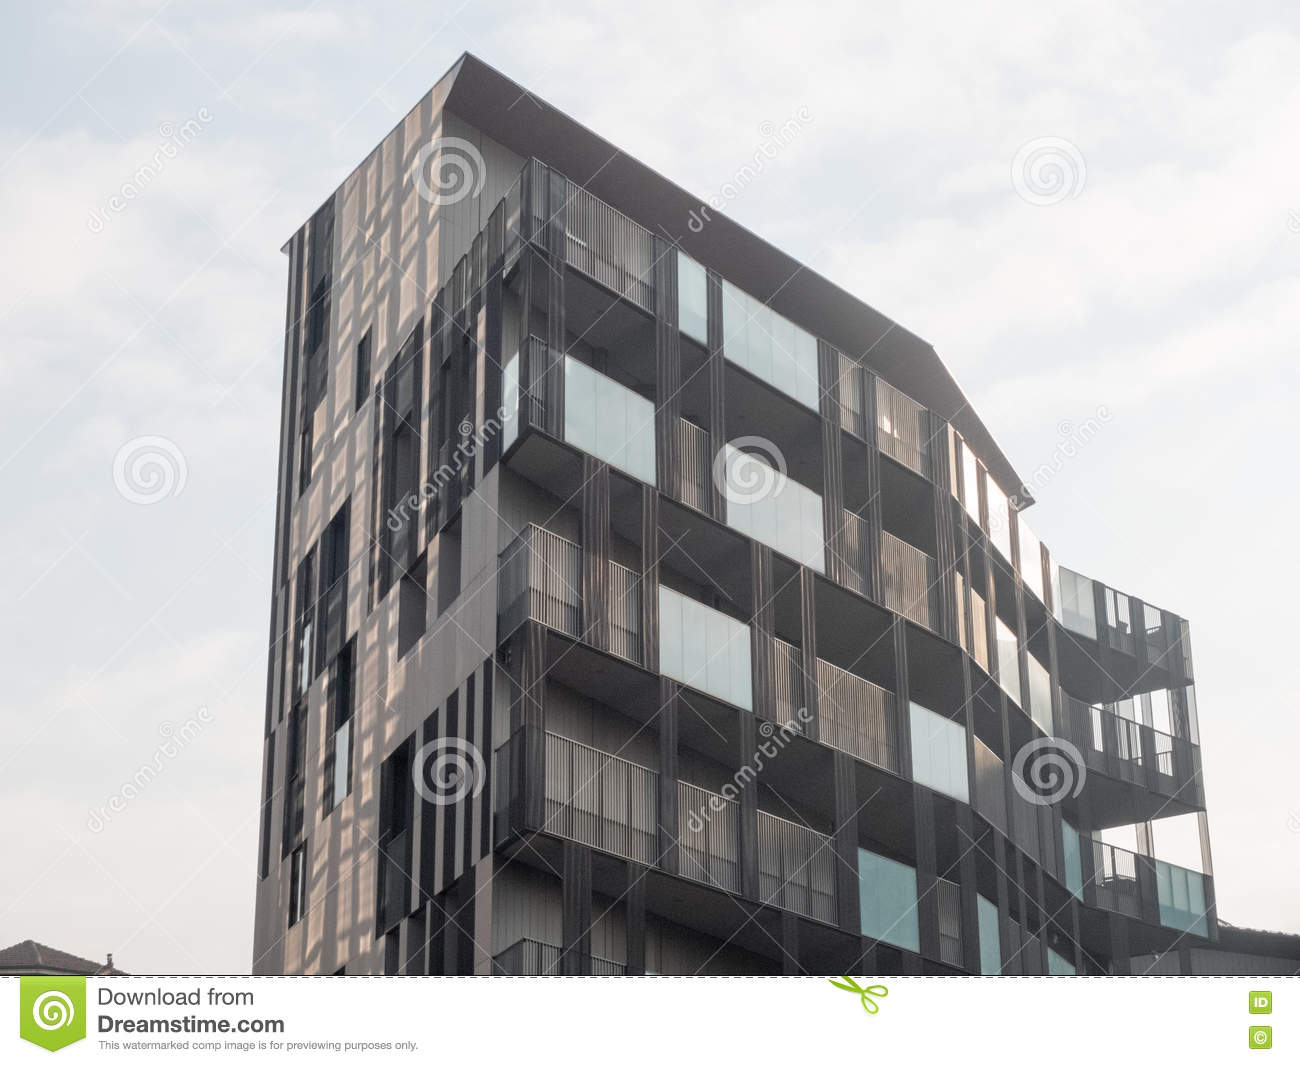 Modern Apartment Building modern apartment building with wavy exterior stock photo - image